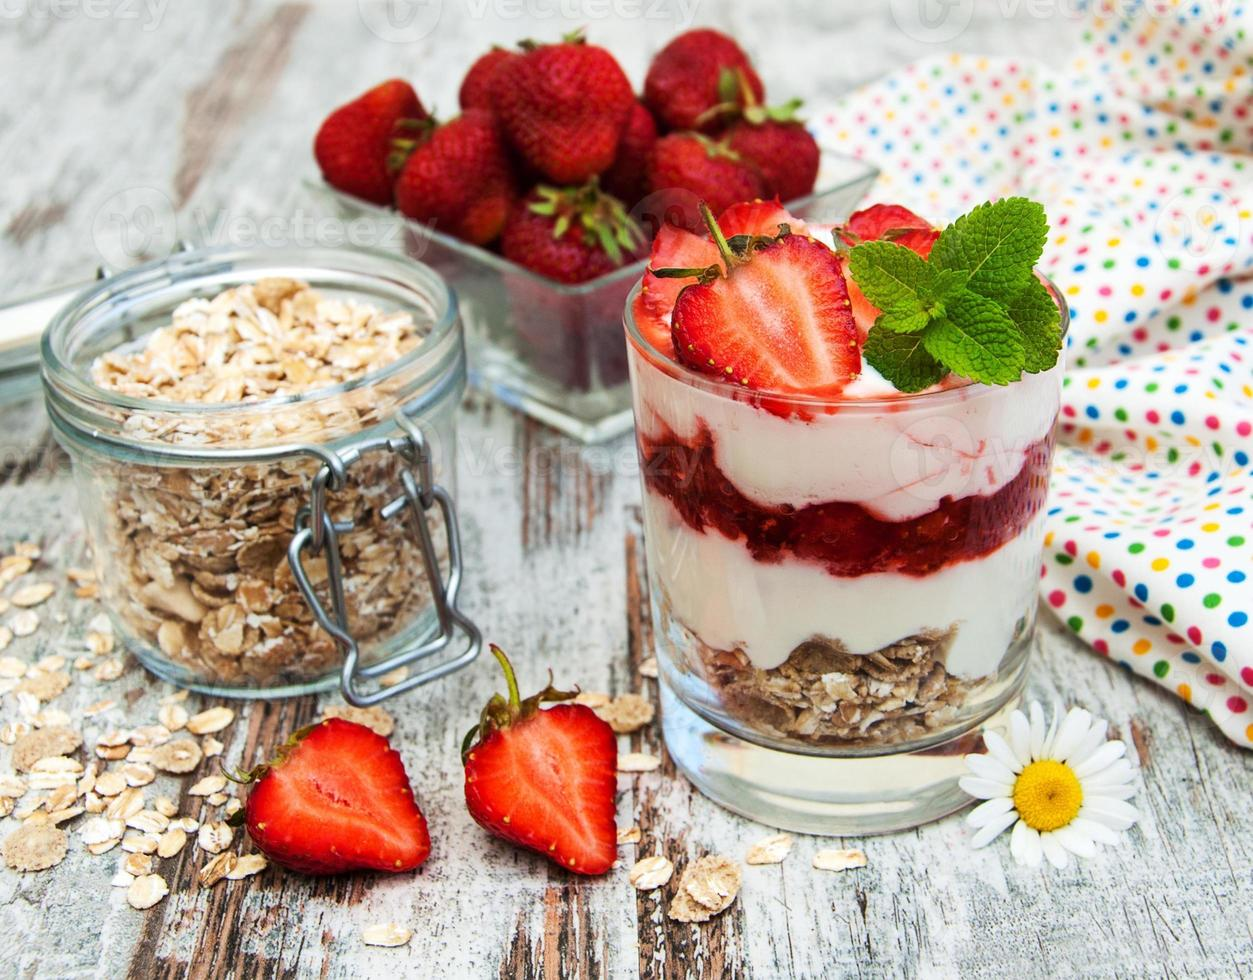 strawberry yogurt with muesli photo